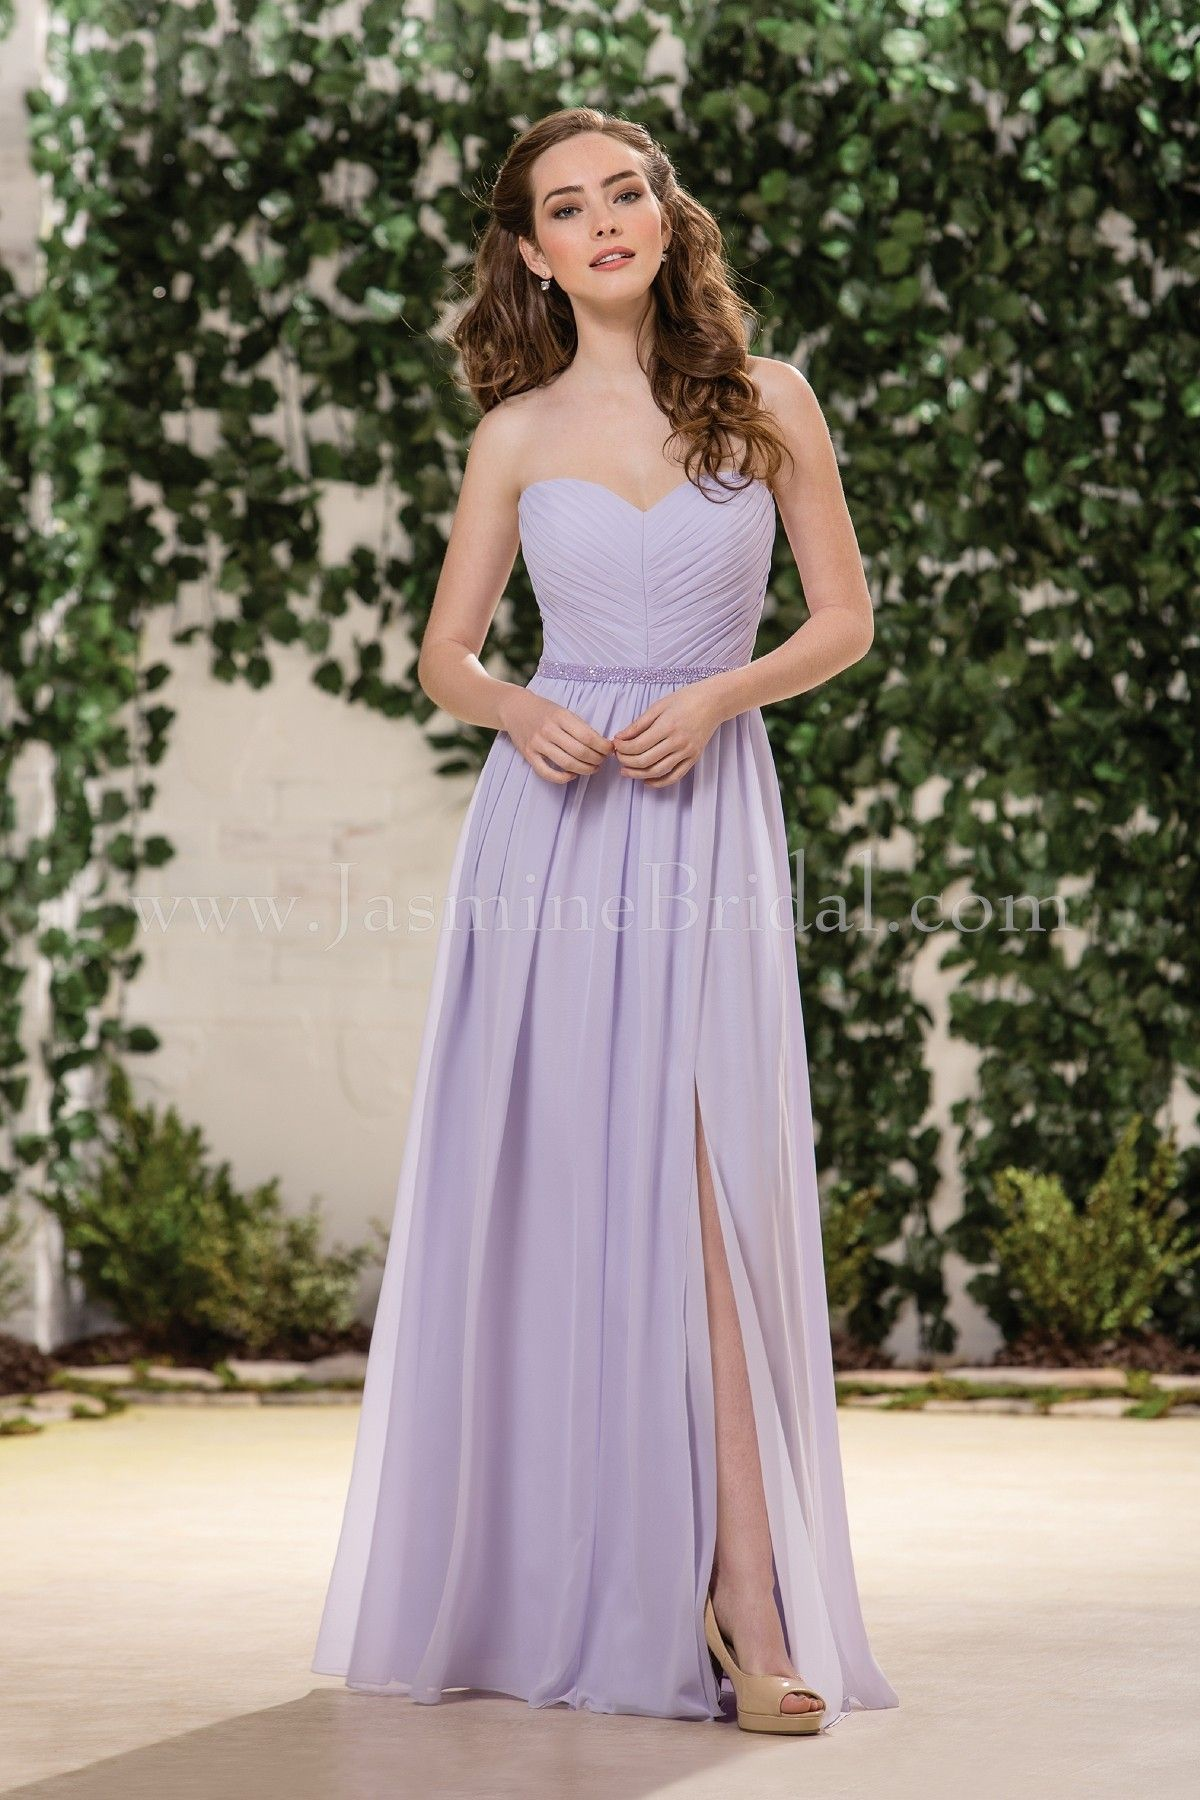 Jasmine bridal bridesmaid dress b2 style b183055 in lavender ice jasmine bridal bridesmaid dress b2 style b183055 in lavender ice ombrellifo Image collections